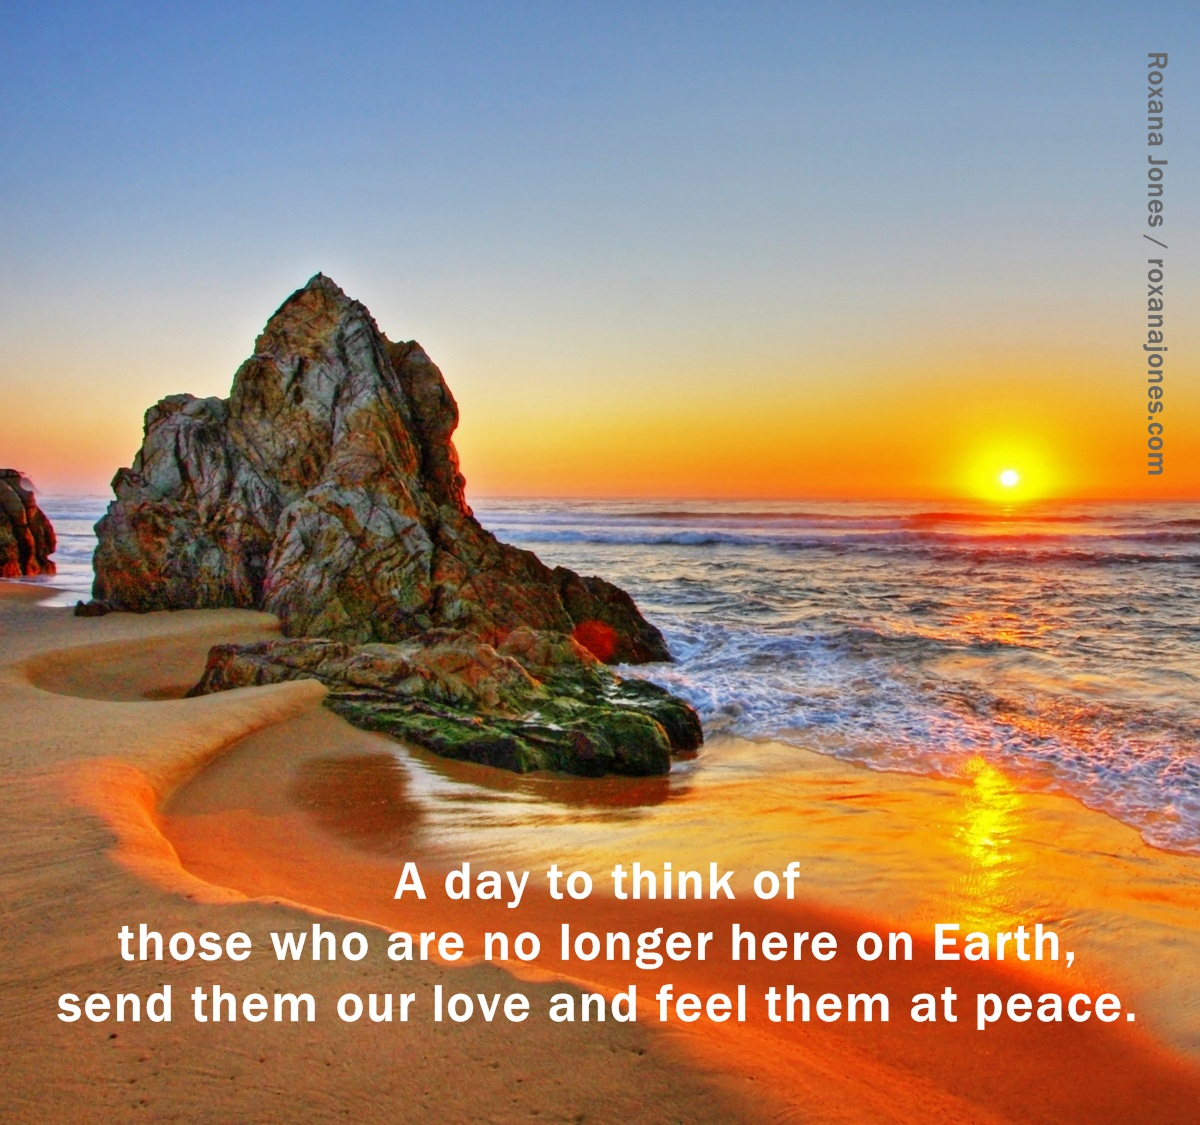 Inspirational Day Quotes: All Souls Day Quotes. QuotesGram